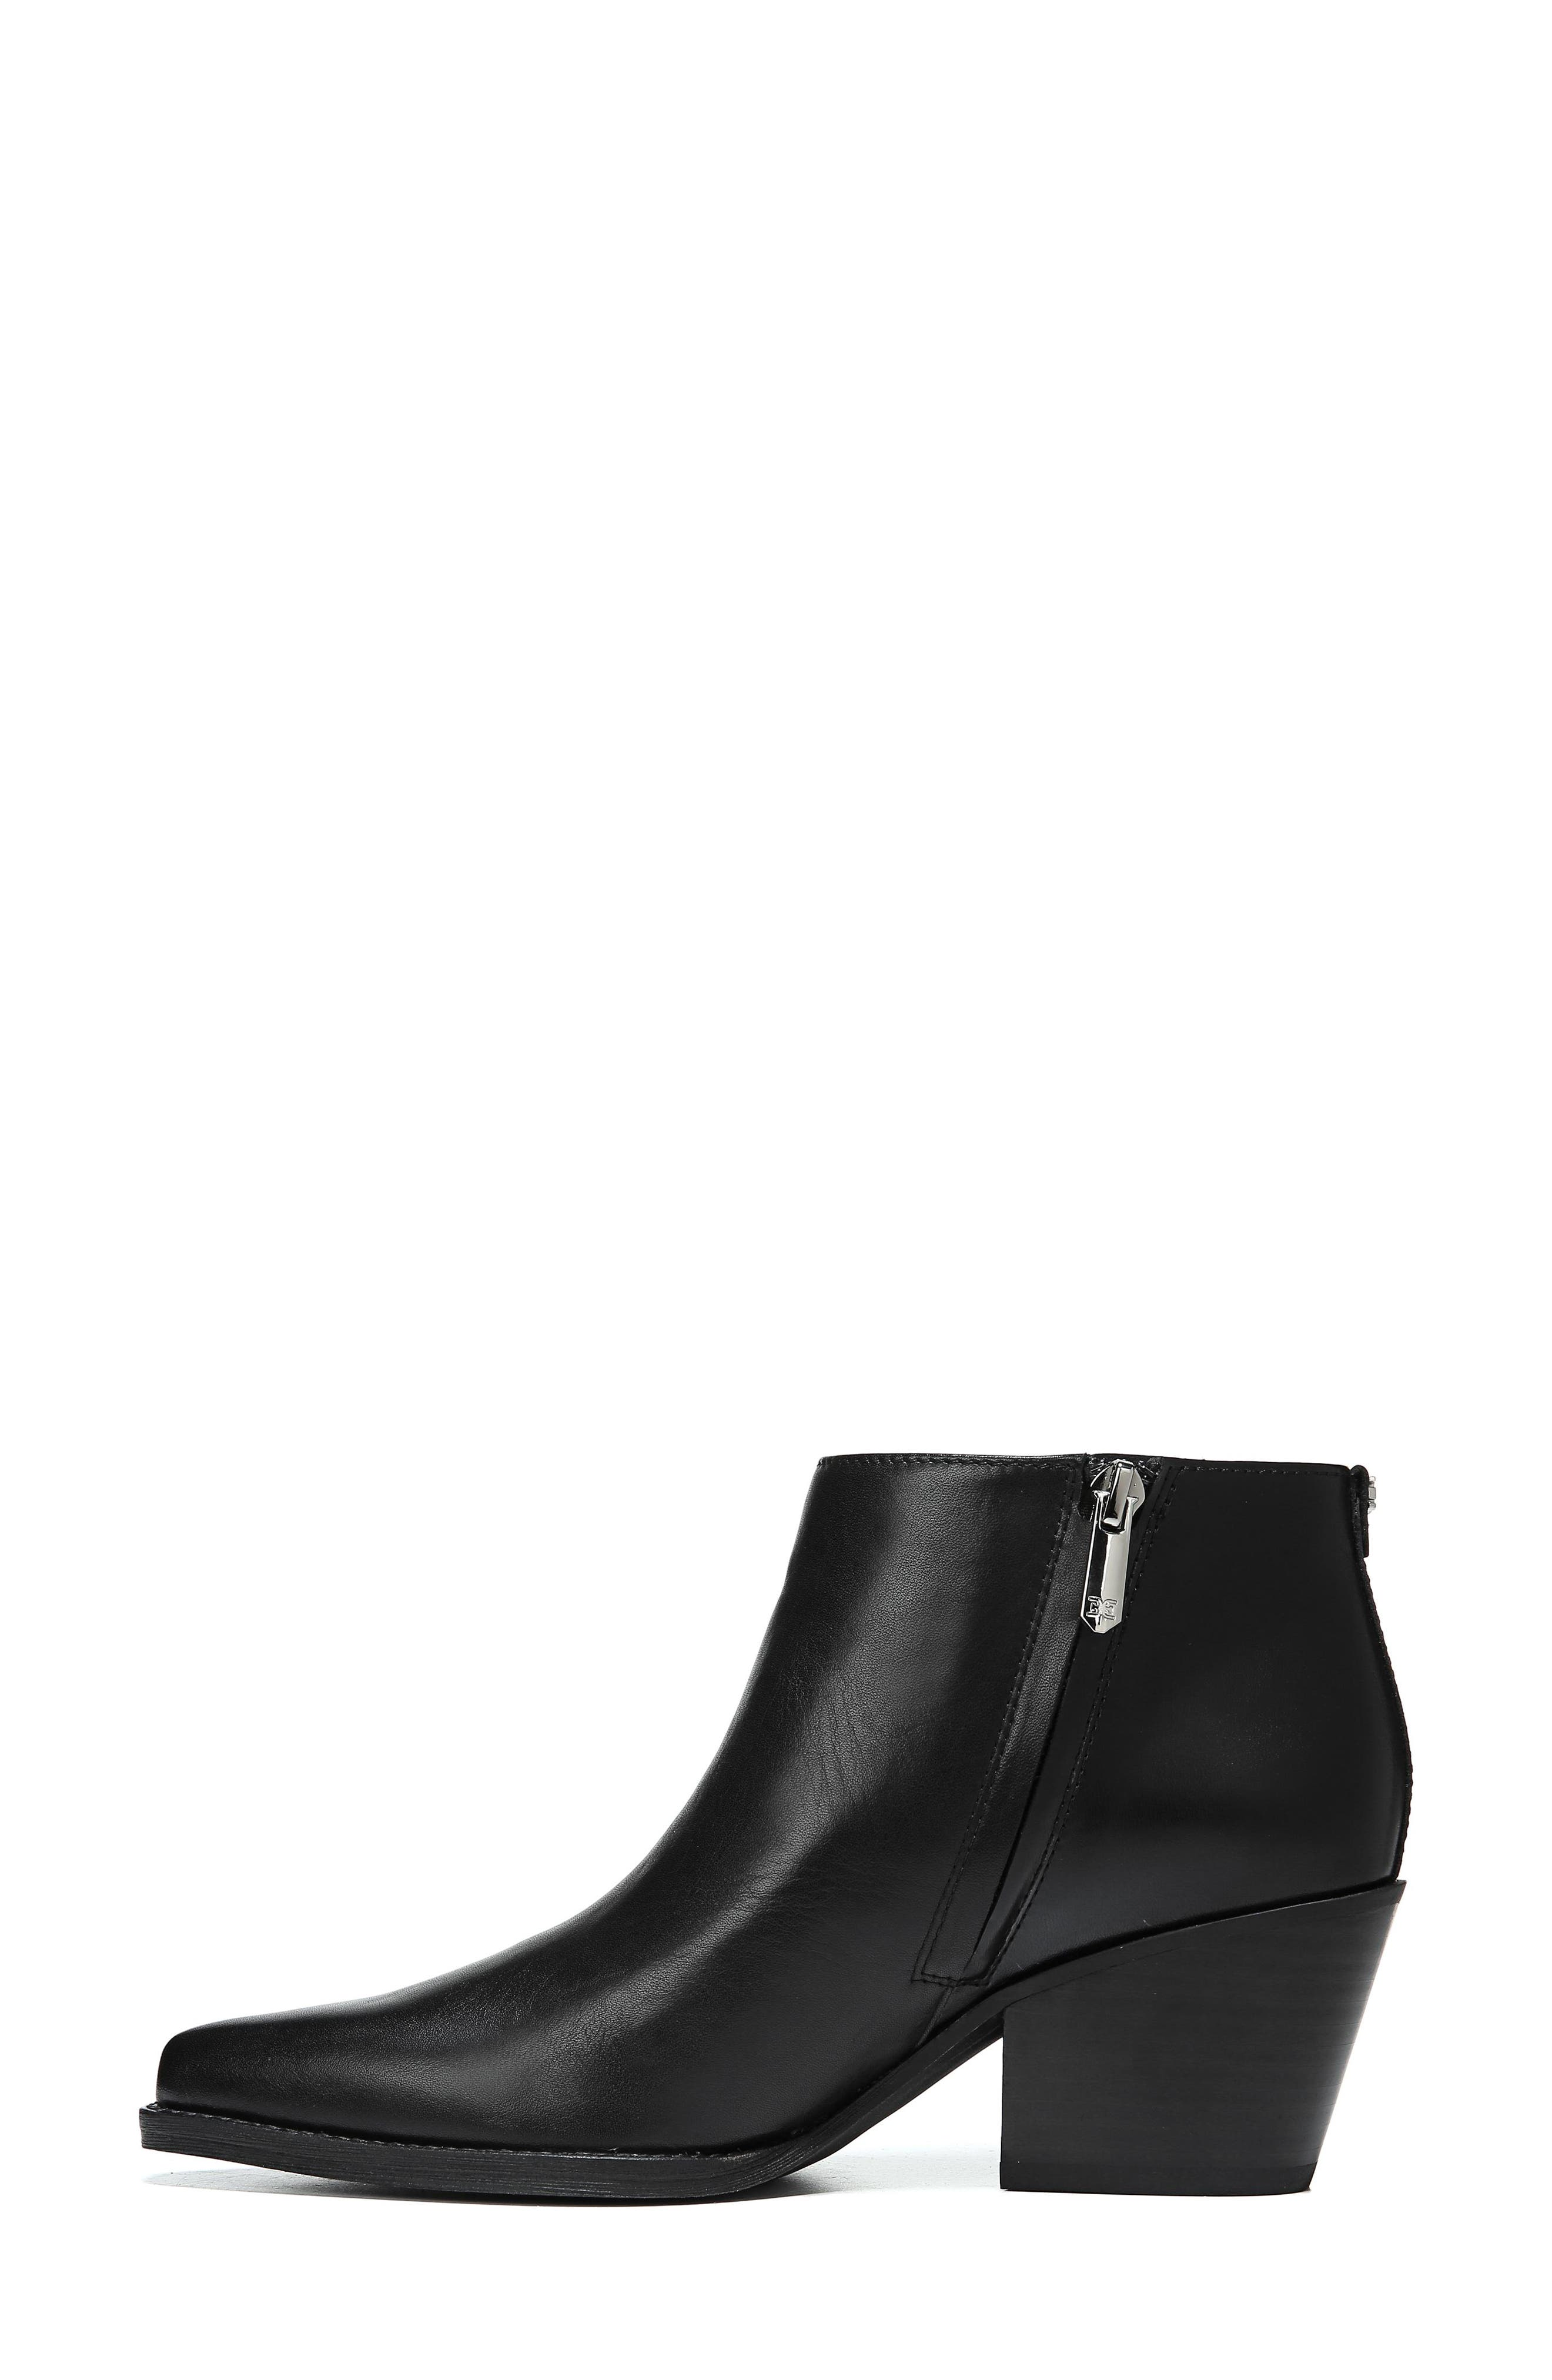 Walden Bootie,                             Alternate thumbnail 9, color,                             BLACK LEATHER